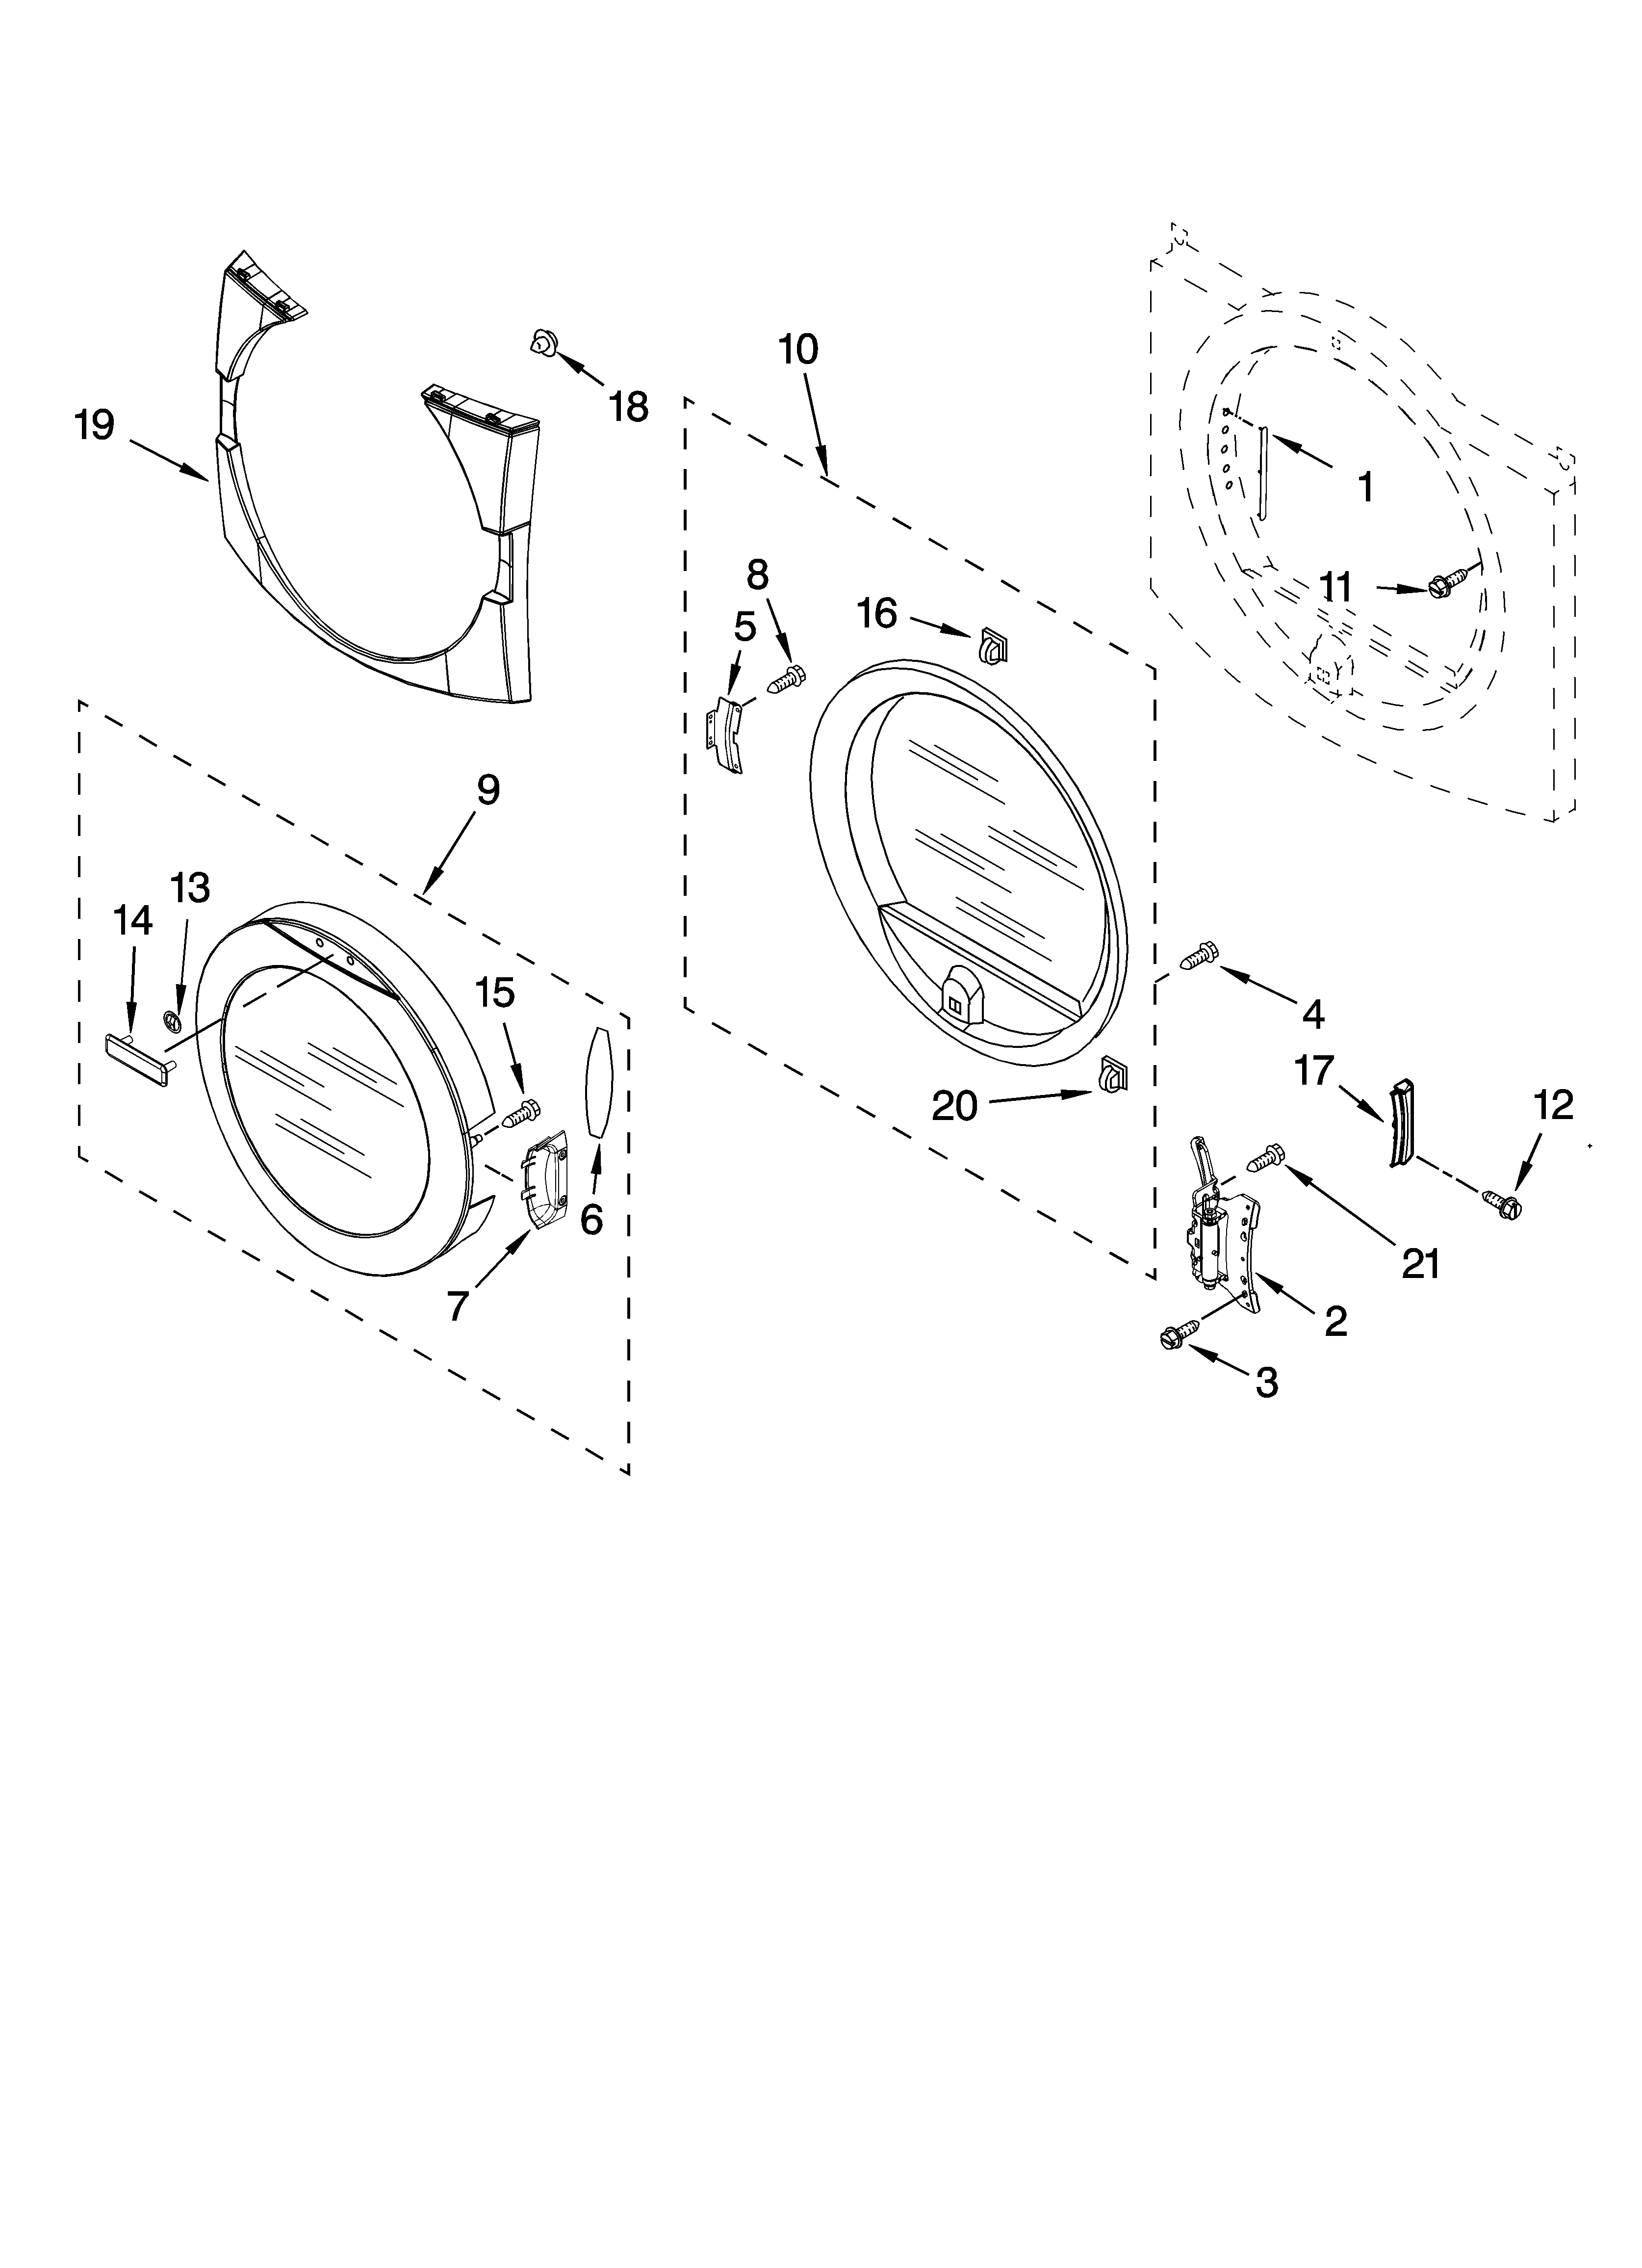 Maytag MED9600SQ0 door parts, optional parts (not included) diagram